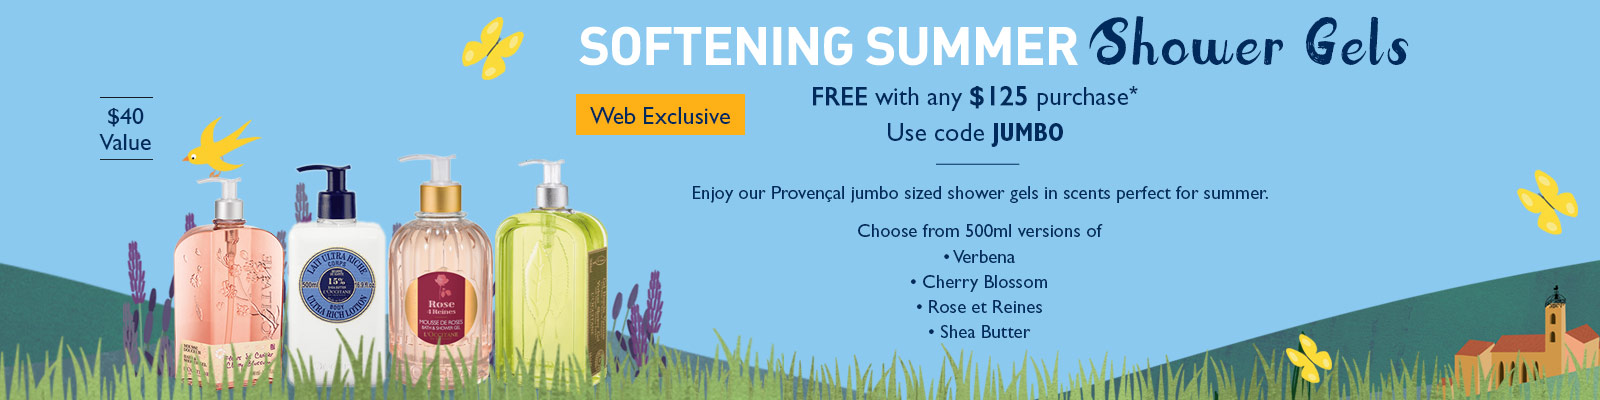 Softening Summer Shower Gels Free with any $125 purchase.  Use code JUMBO